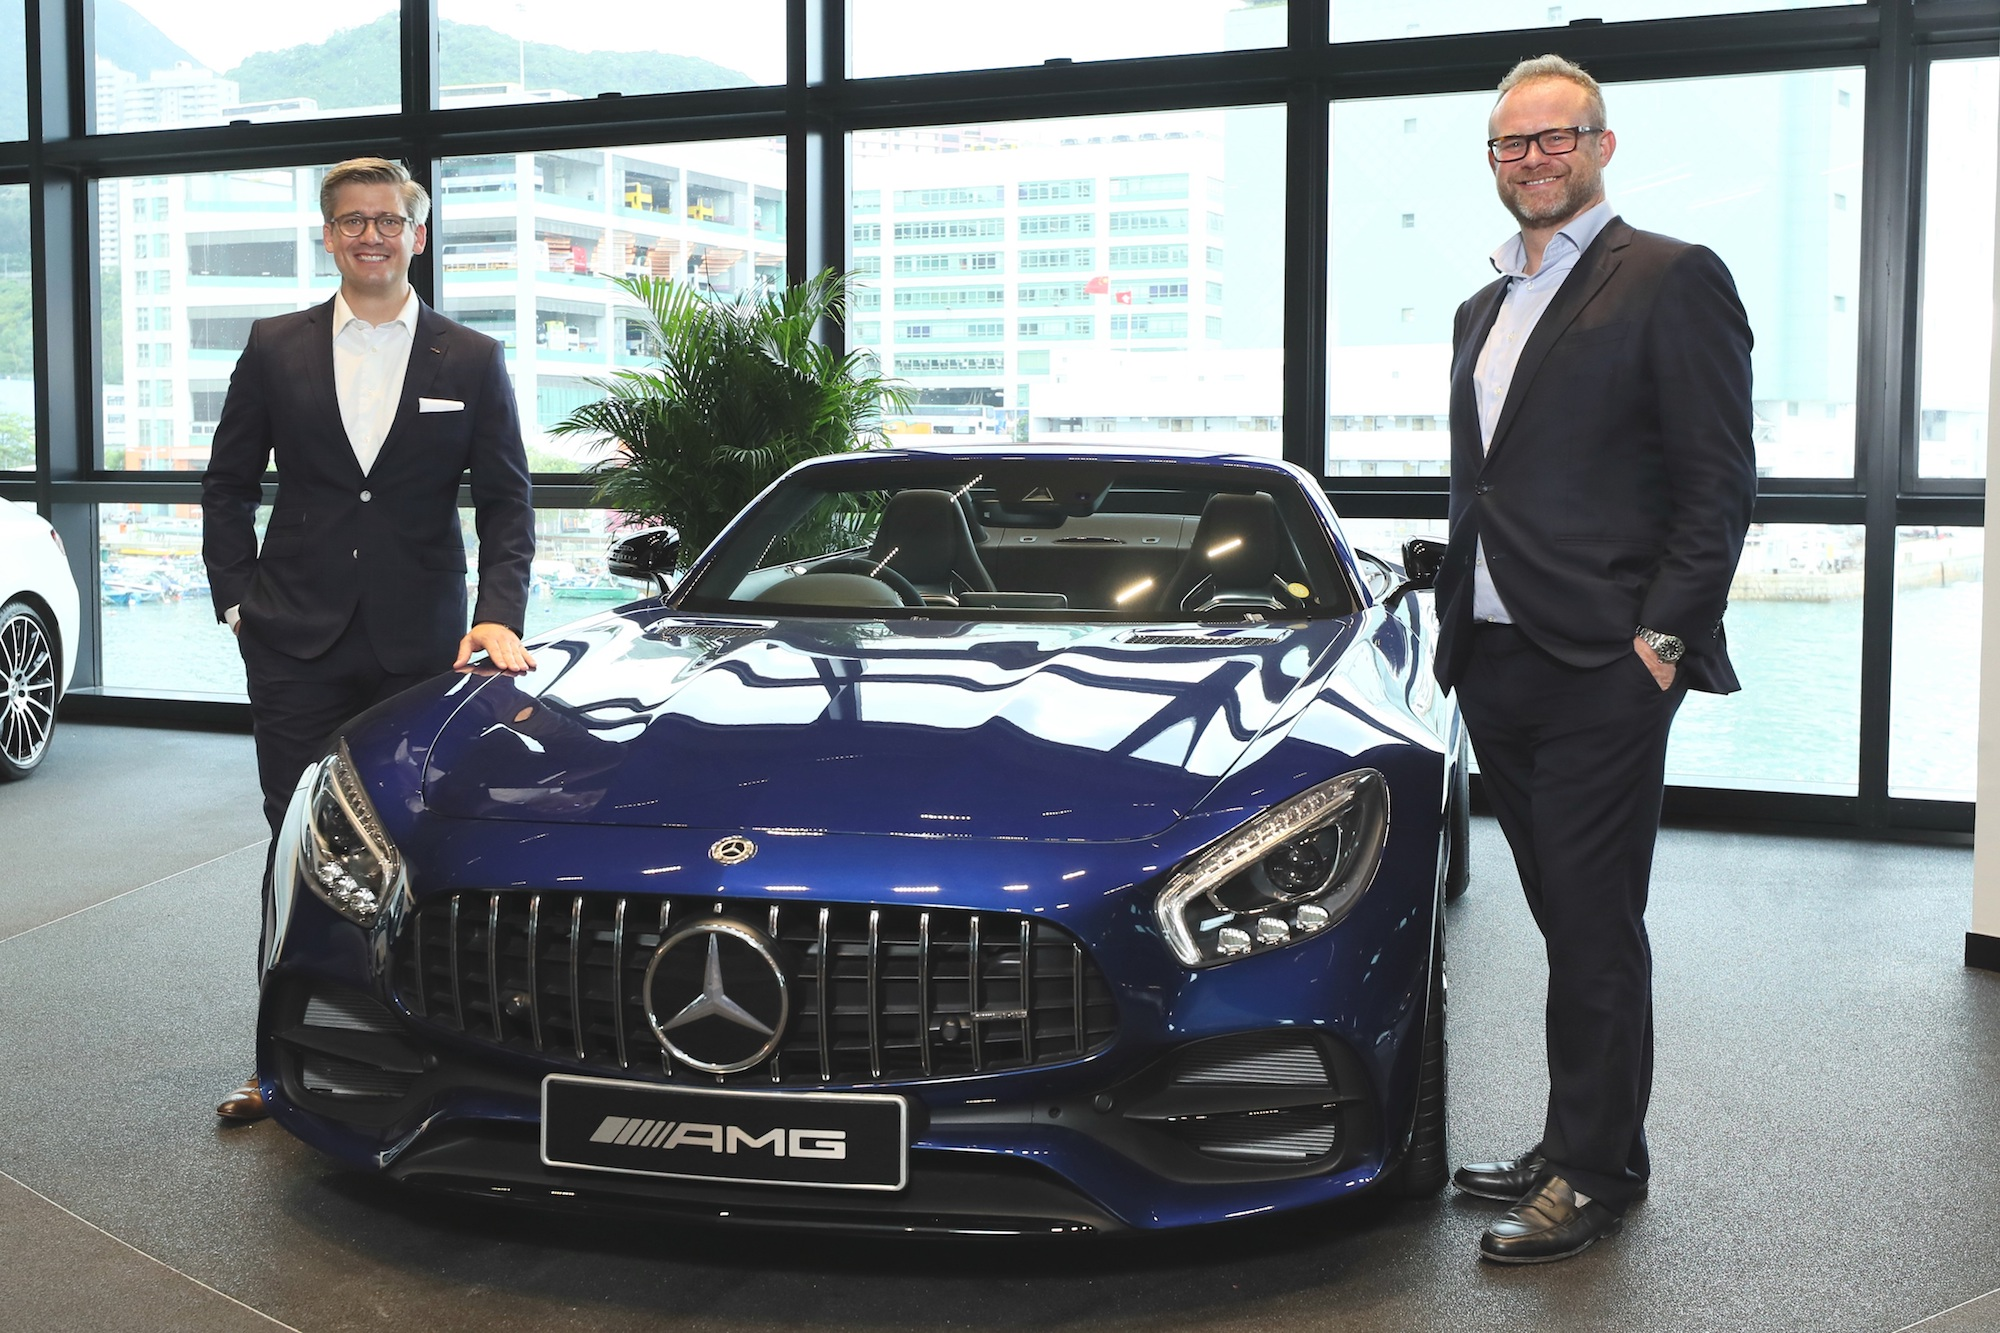 Frederik Gollob, President and CEO of Mercedes-Benz Hong Kong Ltd, Benjamin Birks, Chief Executive, Zung Fu Company Limited. Photo: Courtesy of Zung Fu